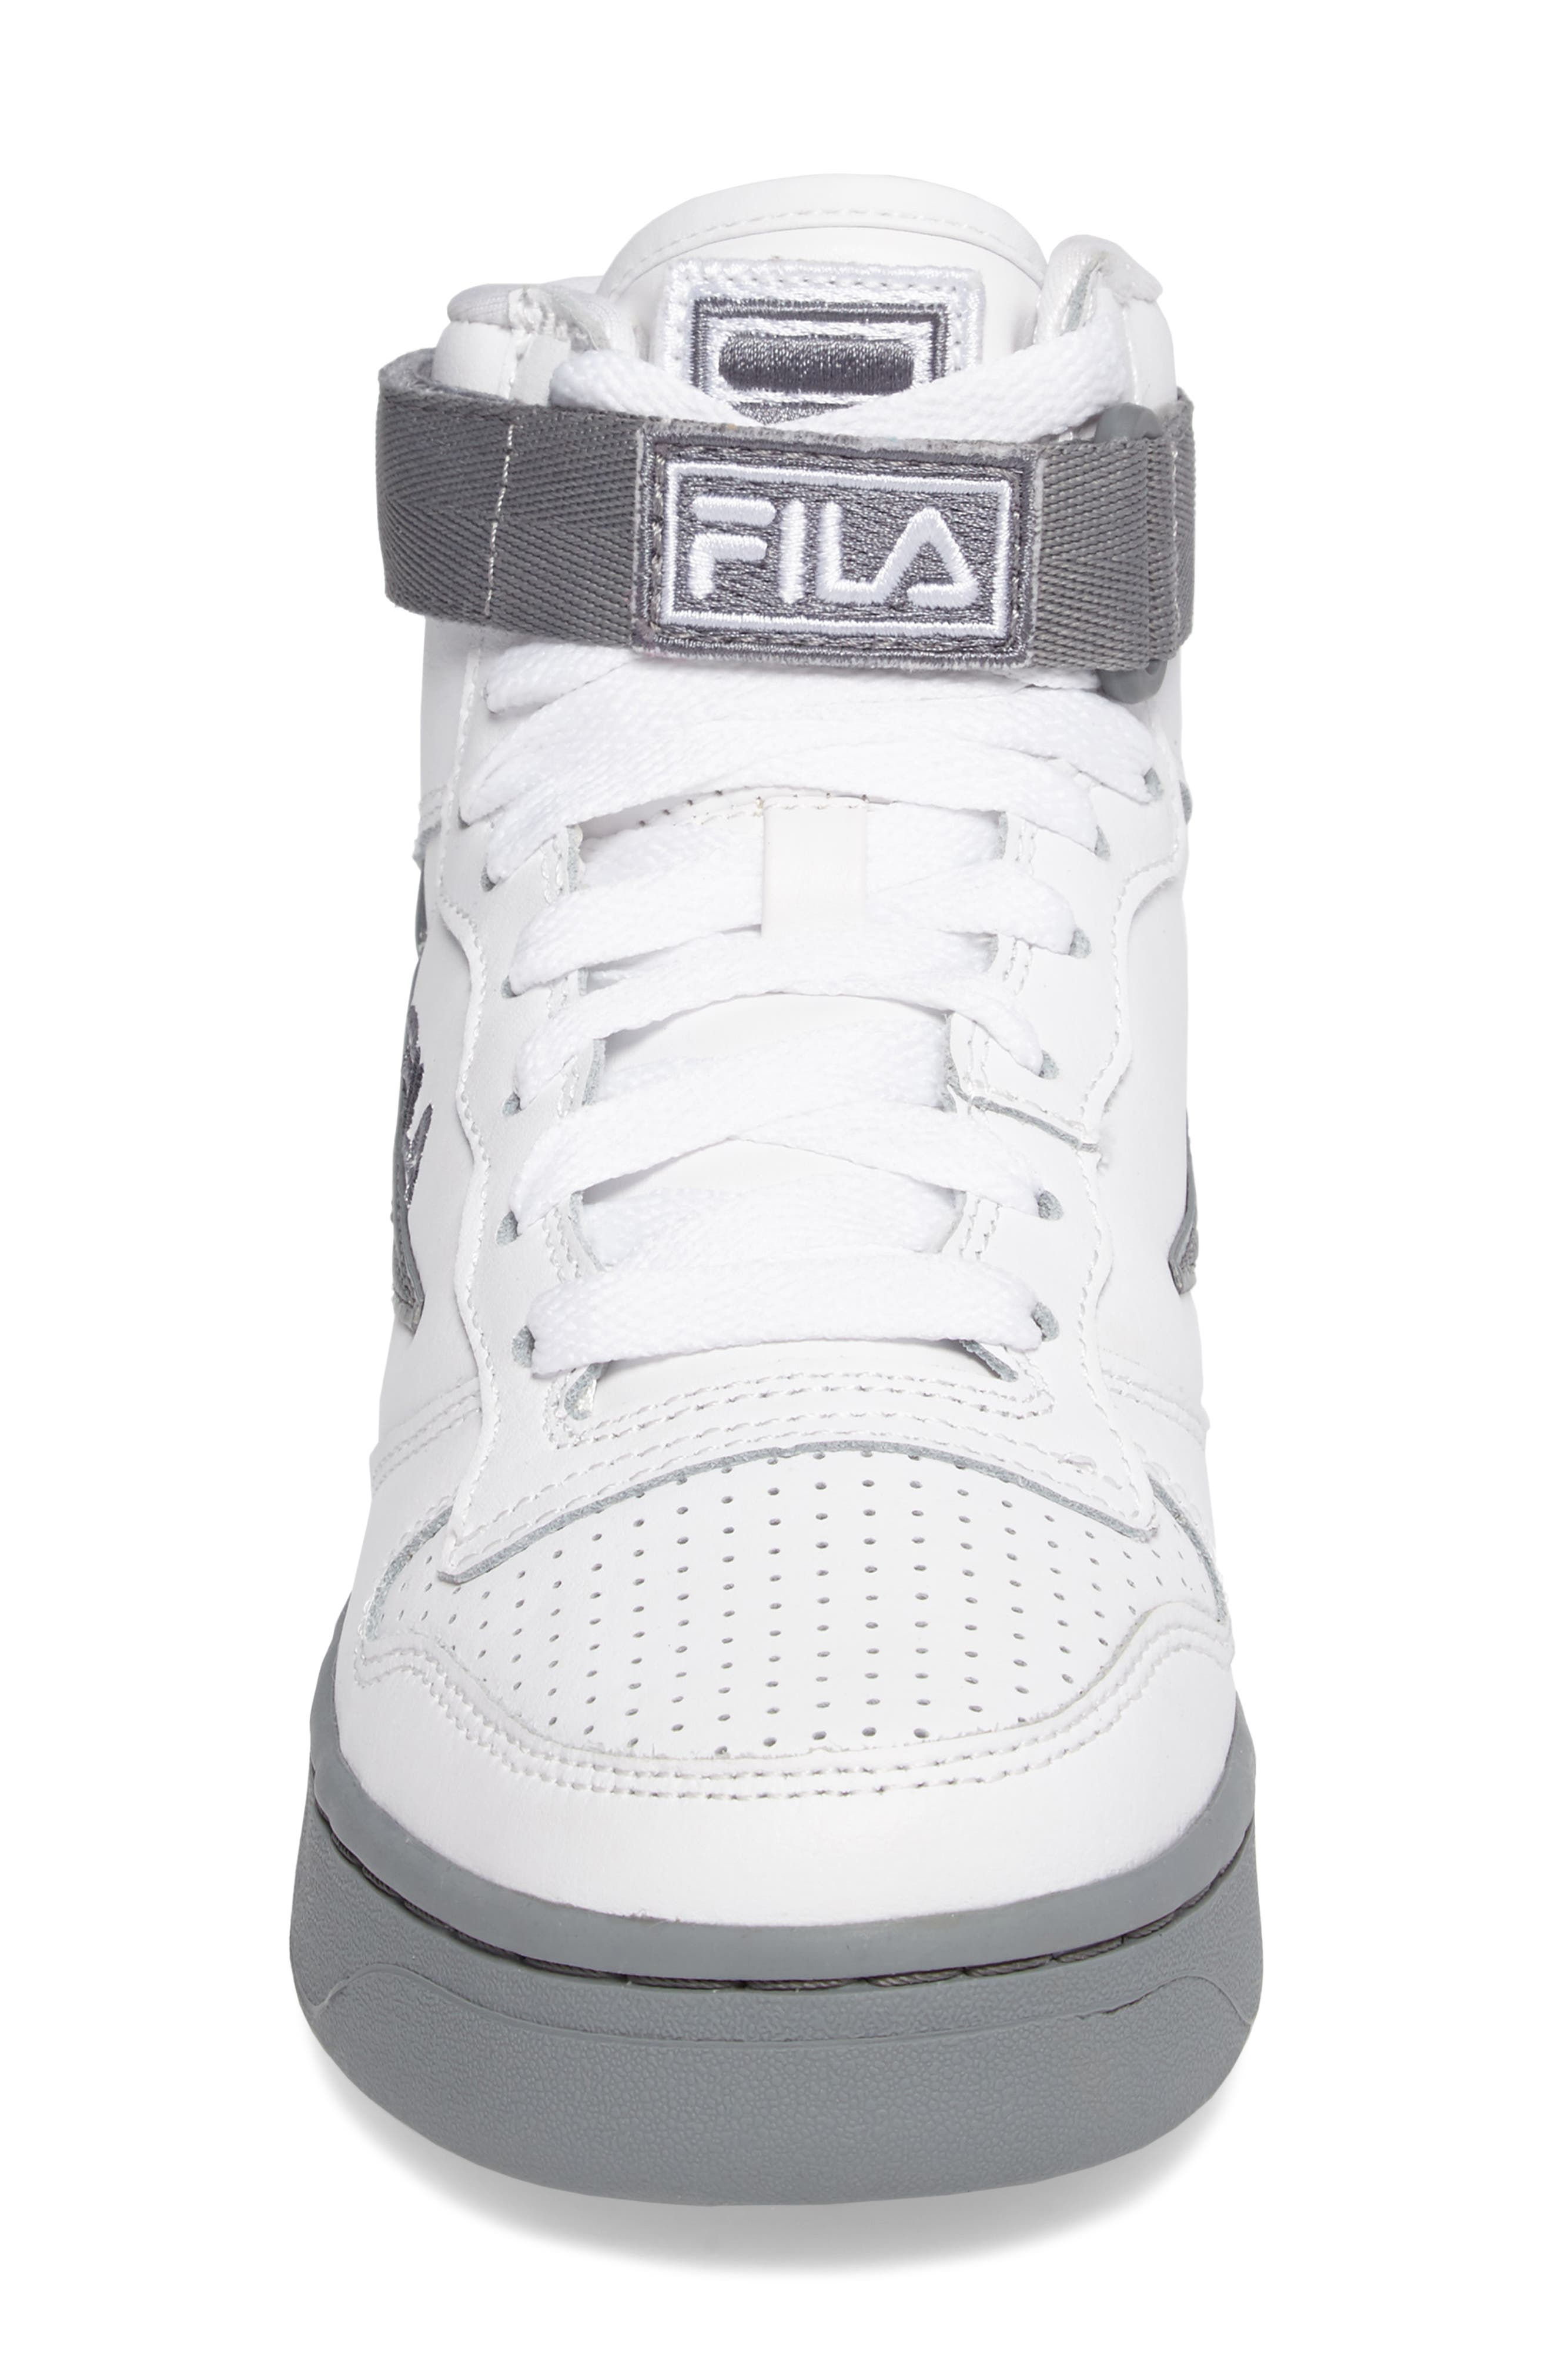 FX-100 High Top Sneaker,                             Alternate thumbnail 4, color,